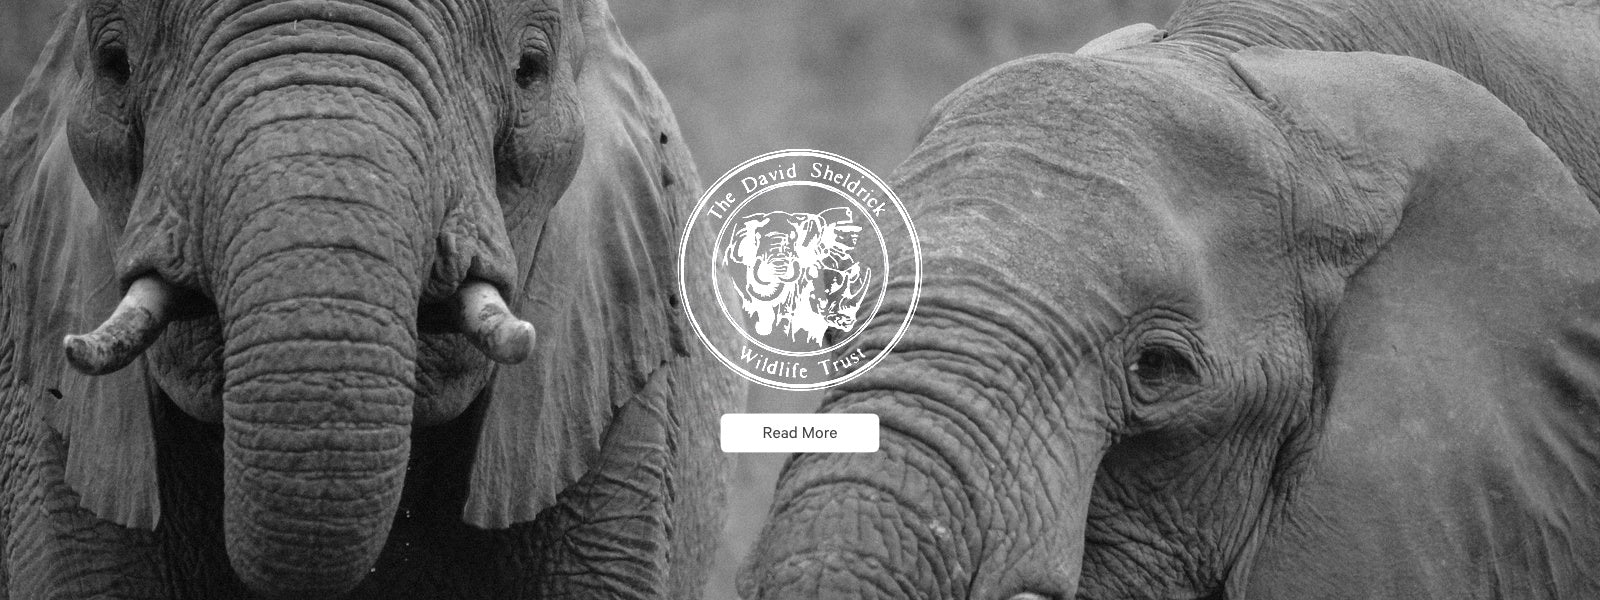 The Give Infinity ∞ Charity Program: Your Impact - The David Sheldrick Wildlife Trust